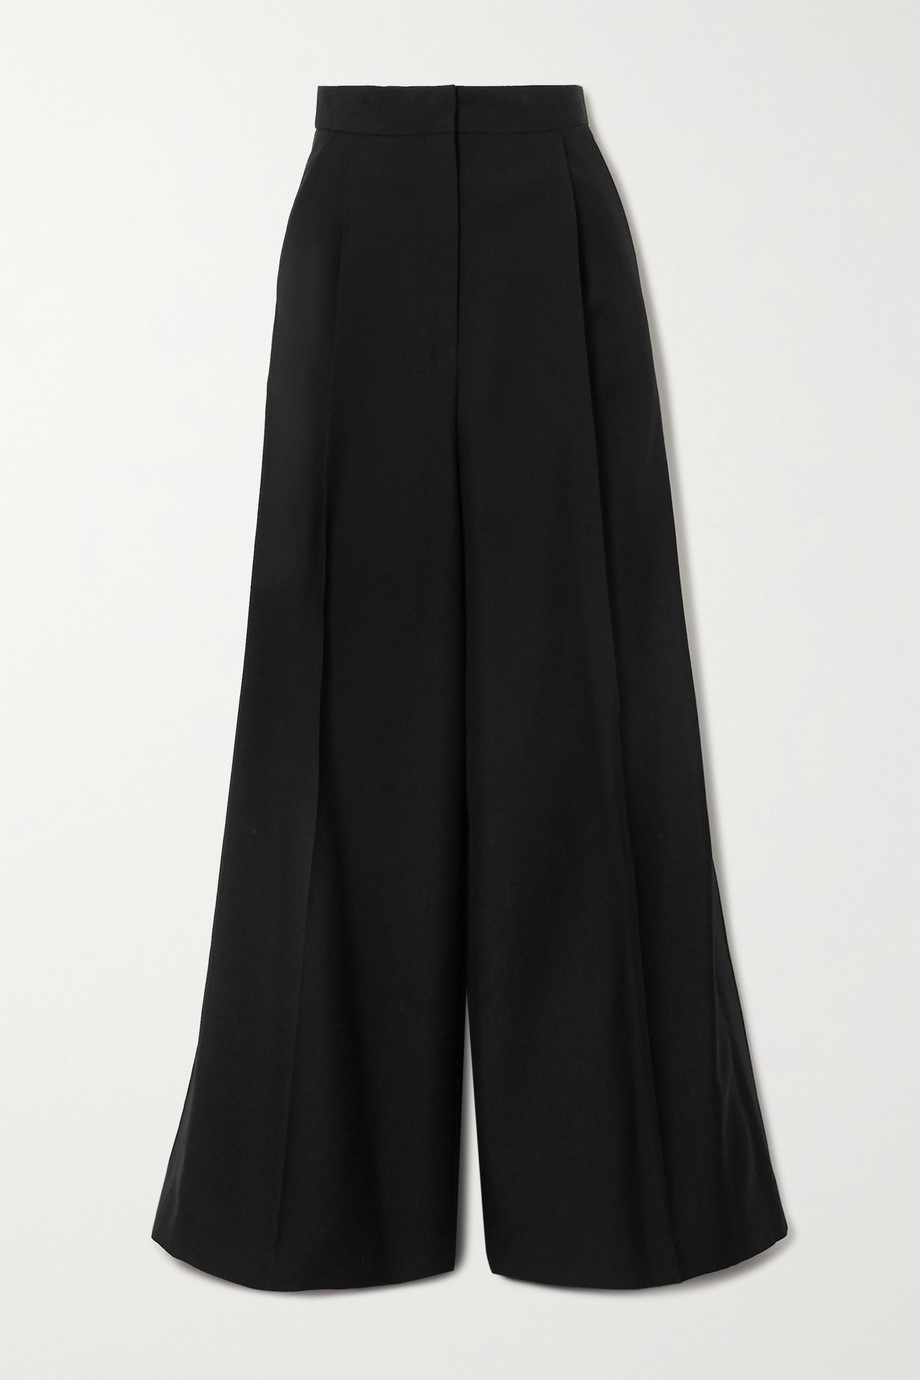 Loewe Satin-trimmed wool wide-leg pants